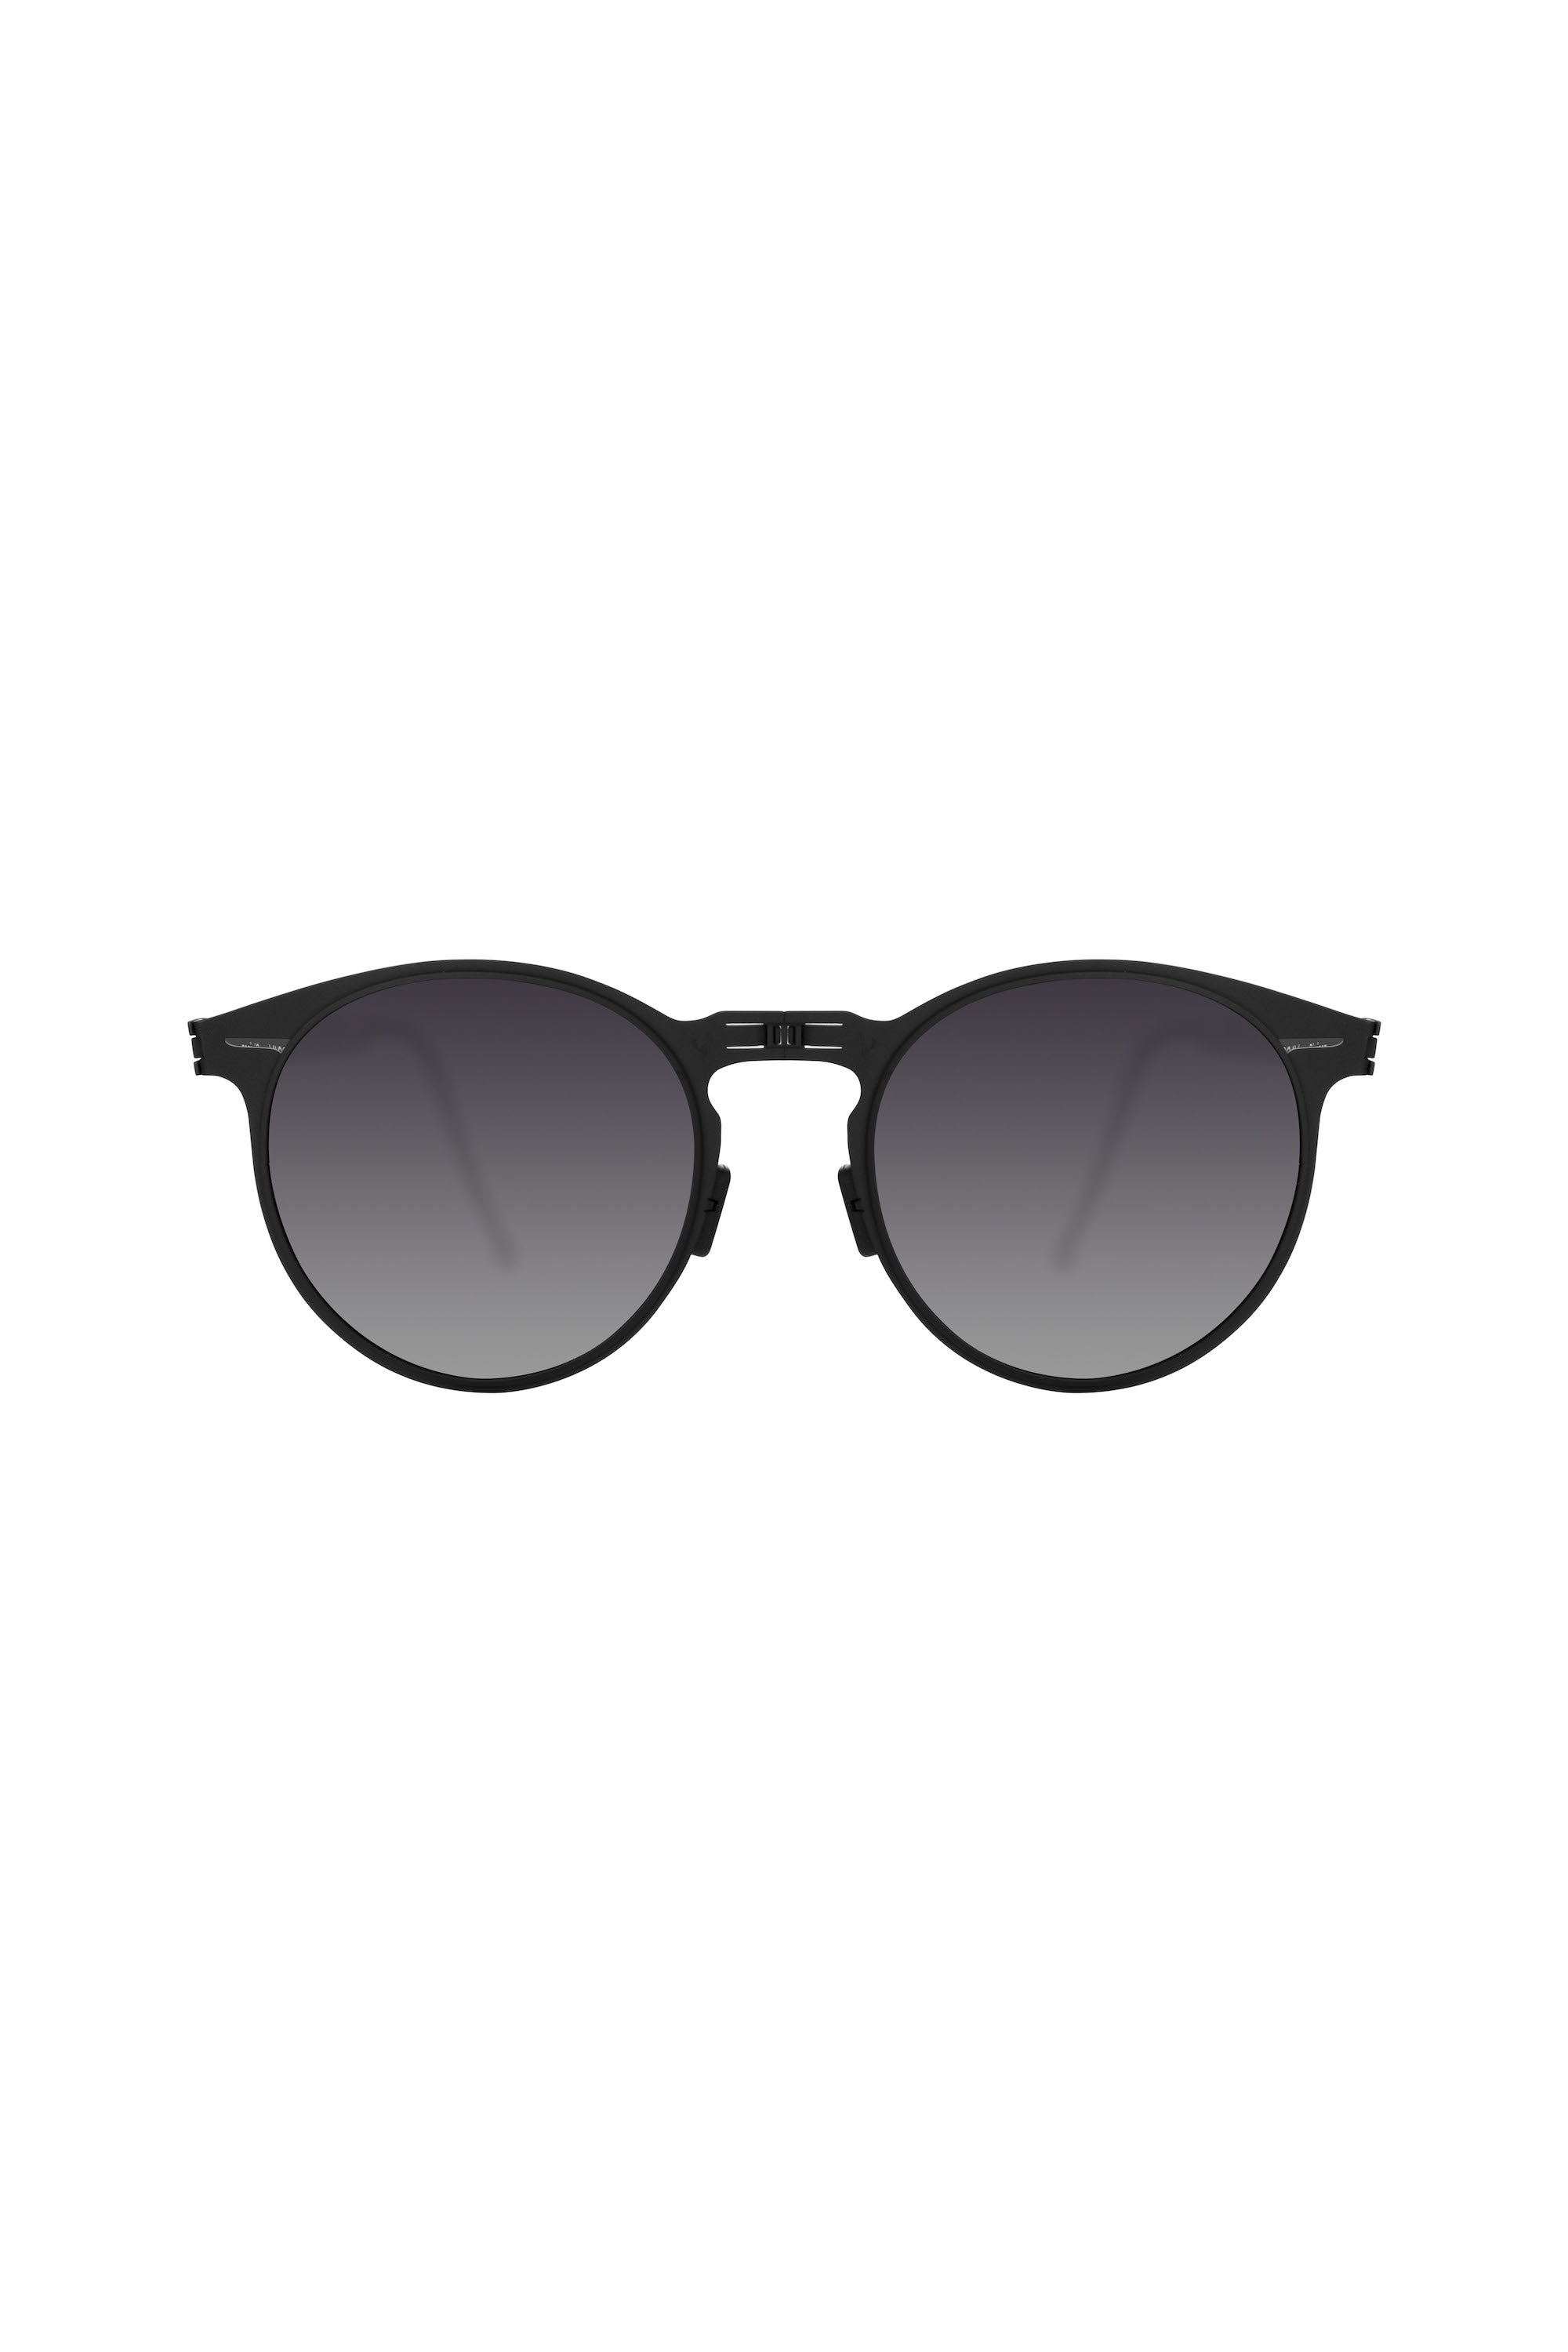 ROAV Folding Sunglasses - Riviera